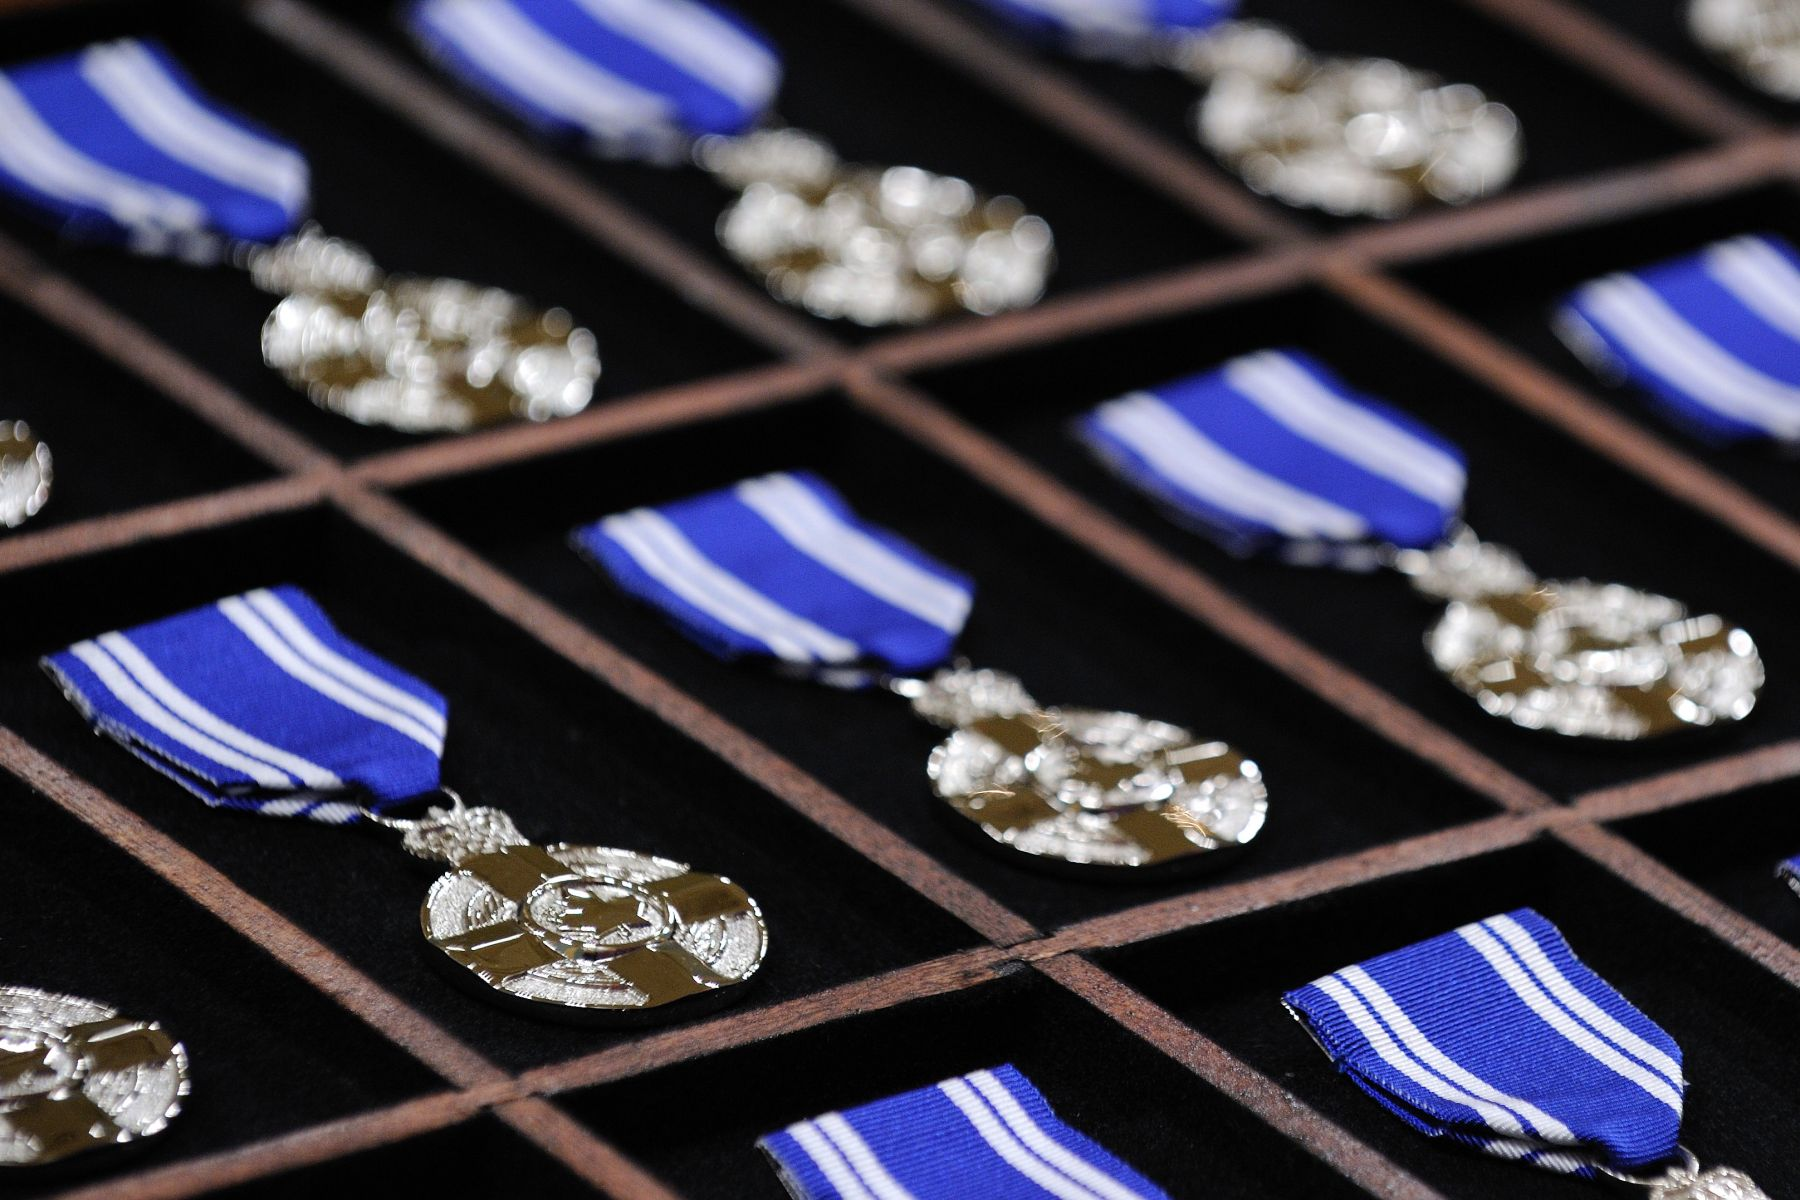 On January 26, 2012, the Governor General and Commander-in-Chief of Canada presented seven Medals of Military Valour to members of the Canadian Forces who have displayed gallantry and devotion to duty in combat, as well as four Meritorious Service Crosses (Military Division) and 28 Meritorious Service Medals (Military Division) to individuals whose specific achievements have brought honour to the Canadian Forces and to Canada.